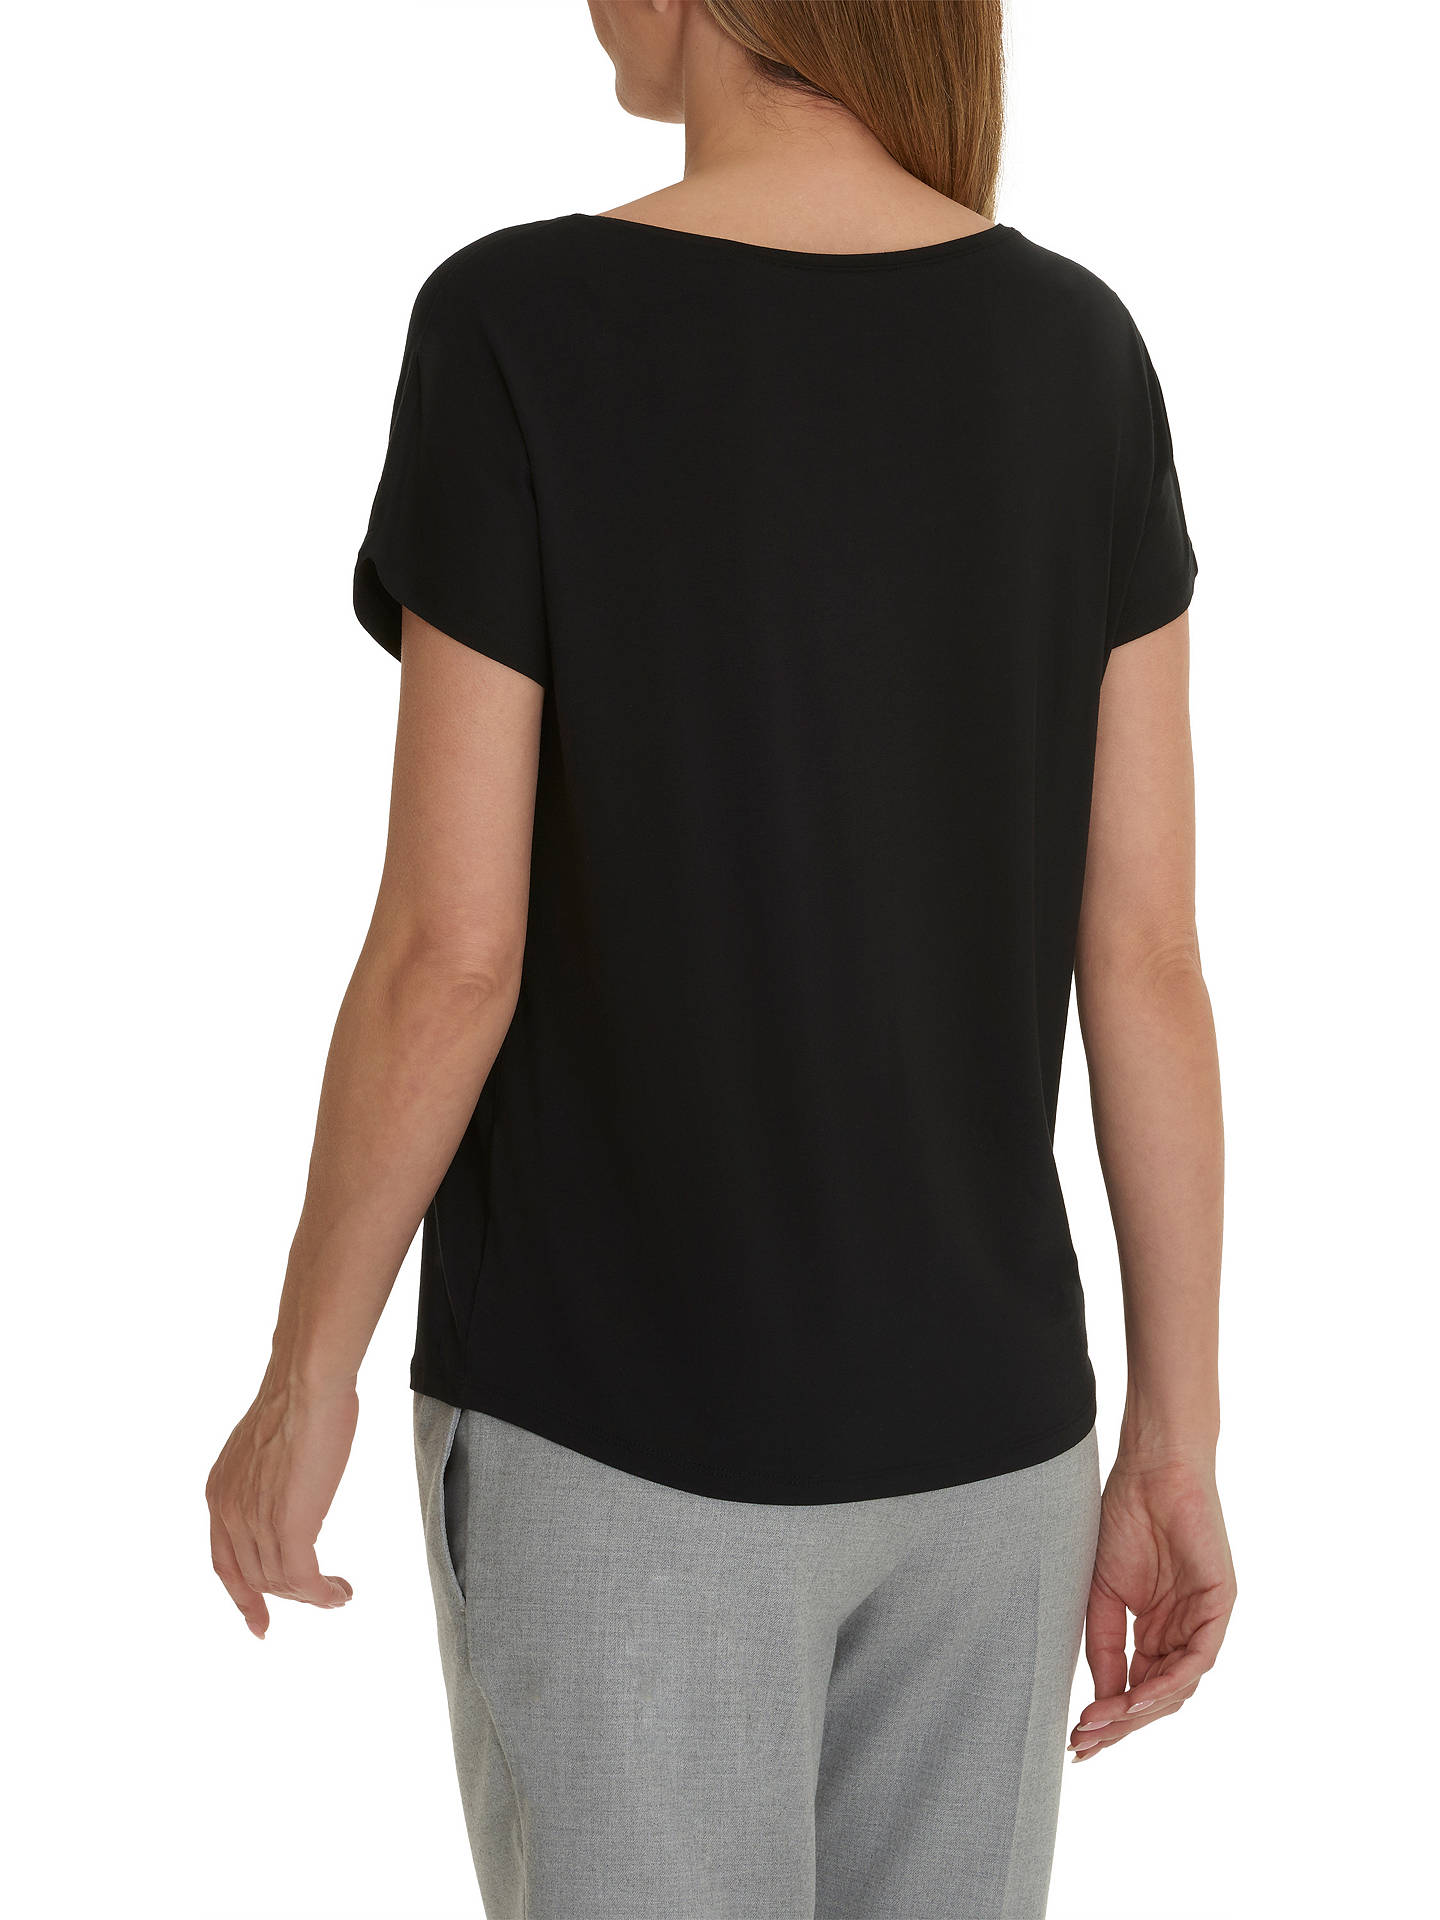 BuyBetty & Co. Short Sleeve T-Shirt, Black, S Online at johnlewis.com